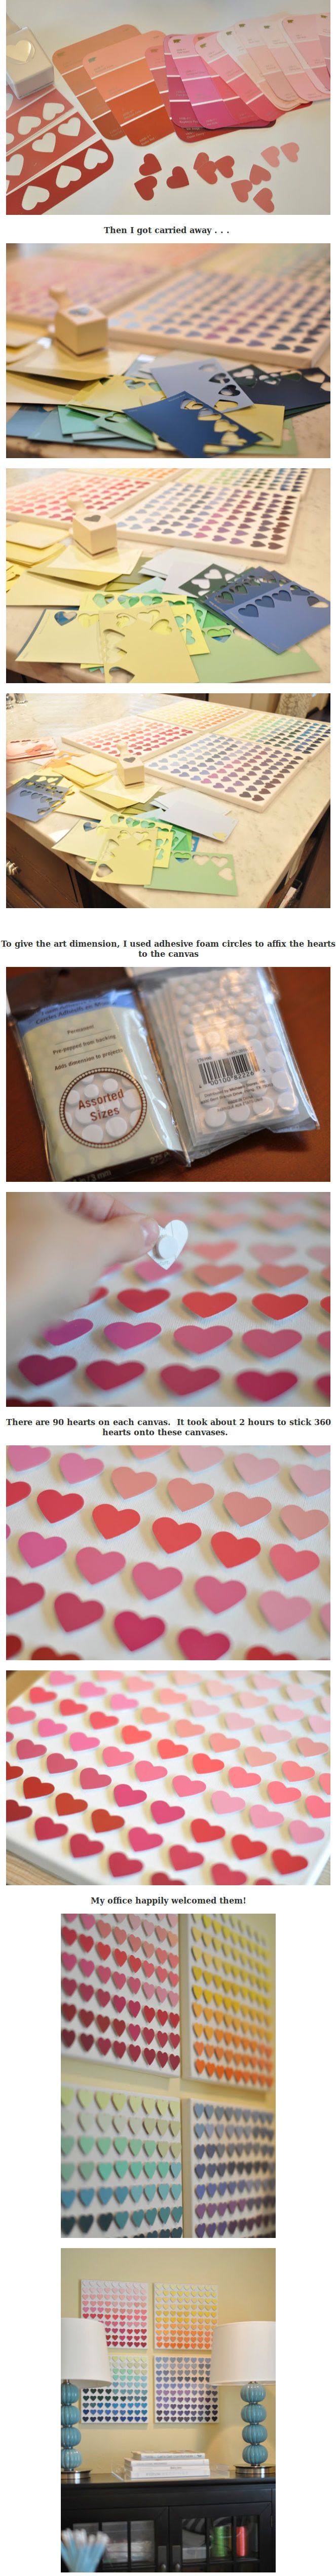 DIY Hearts Shaped Paint Chip Art....ain't nobody got time for that!